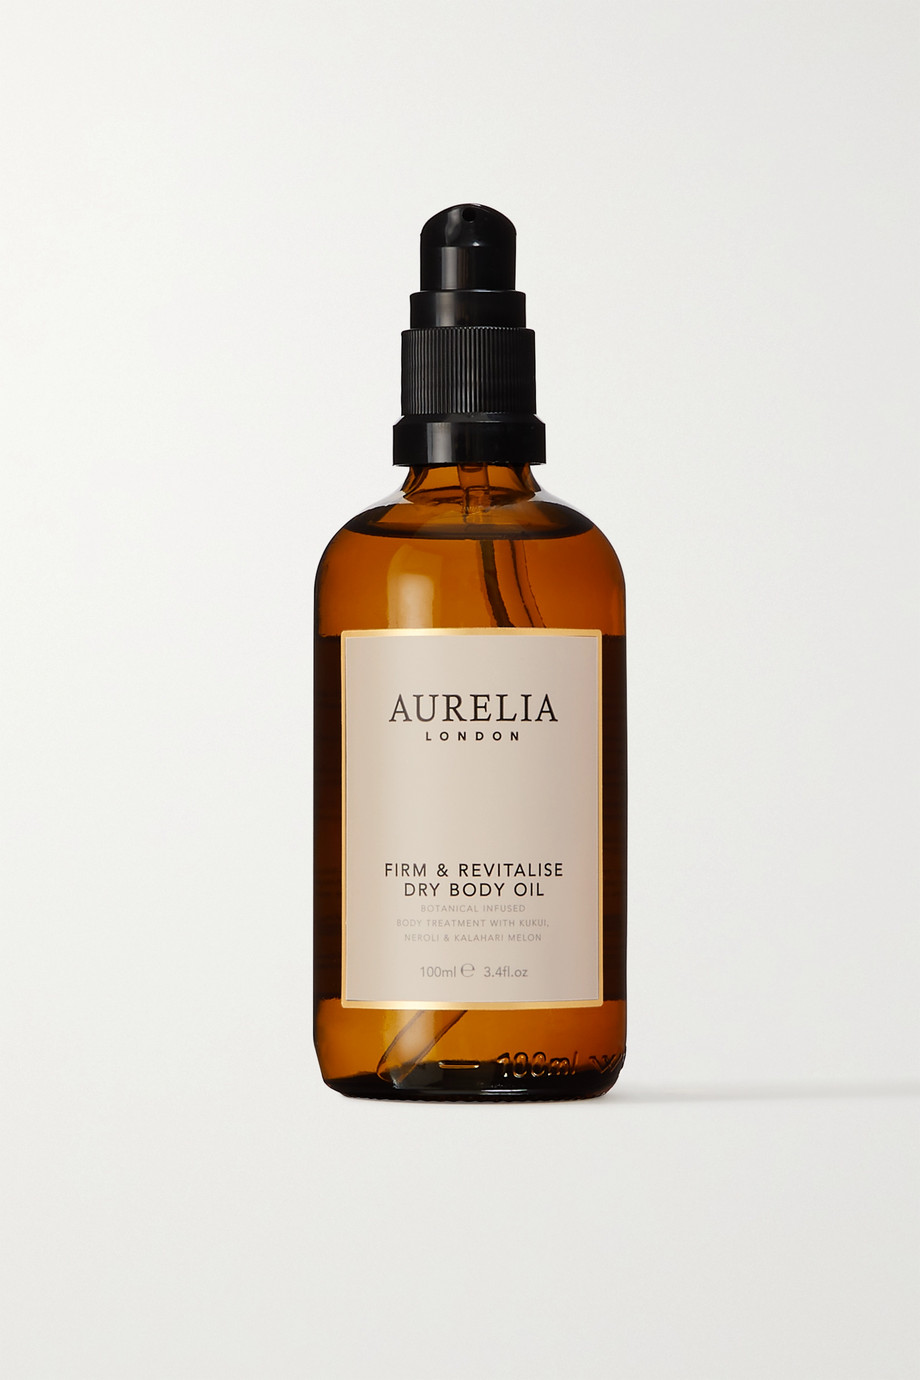 Firm and Revitalise Dry Body Oil, 100ml, by Aurelia Probiotic Skincare